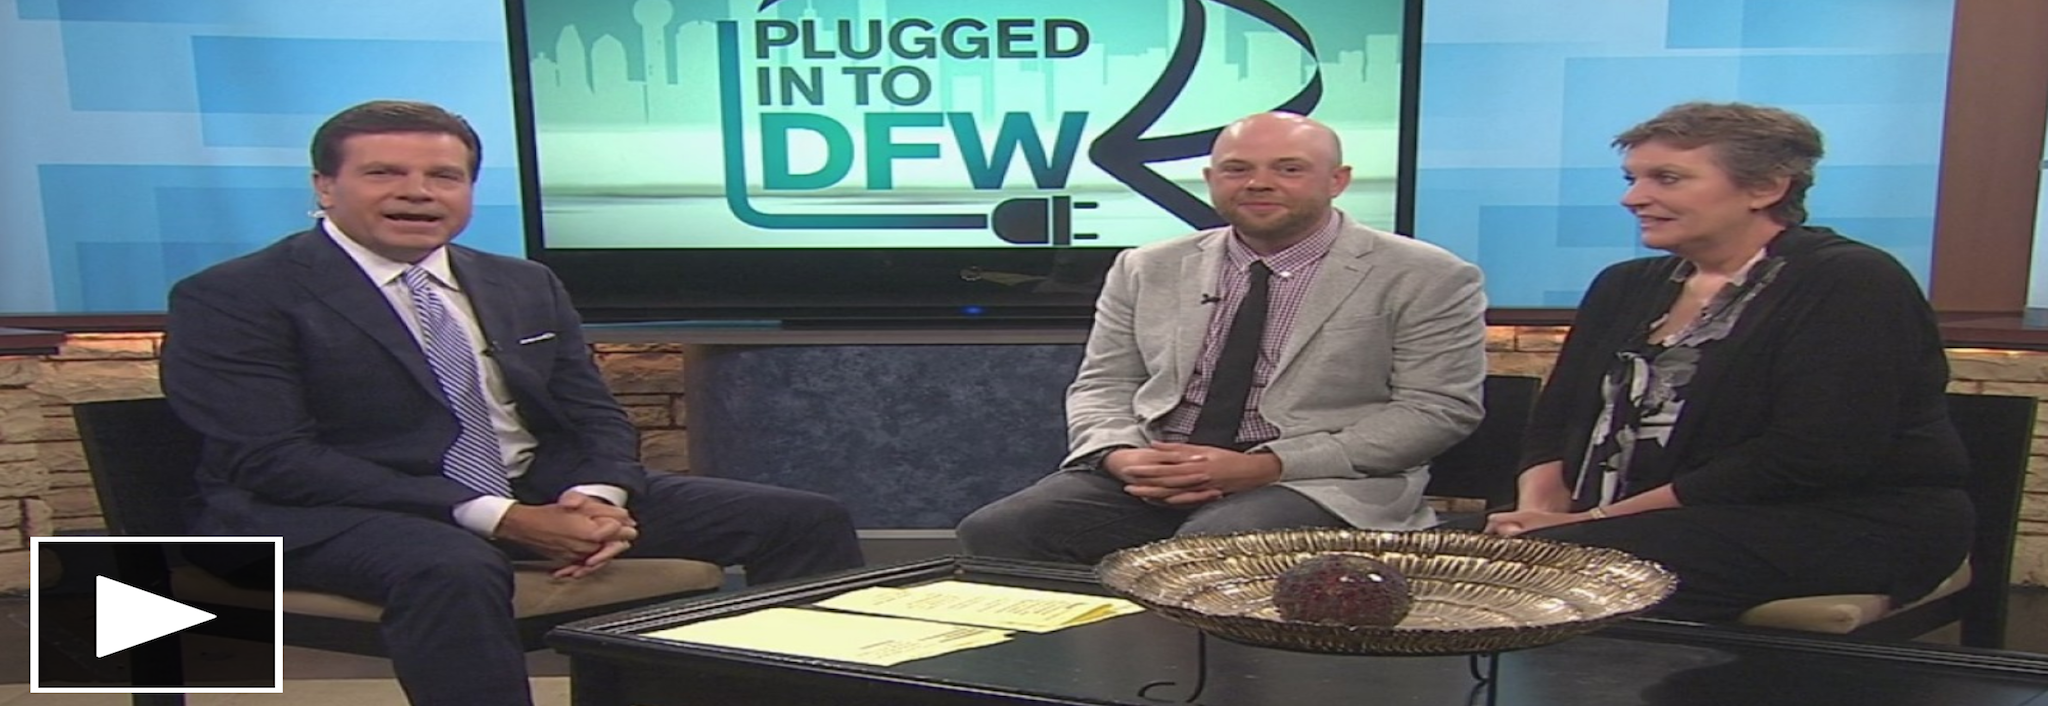 Watch ACT on Plugged Into DFW